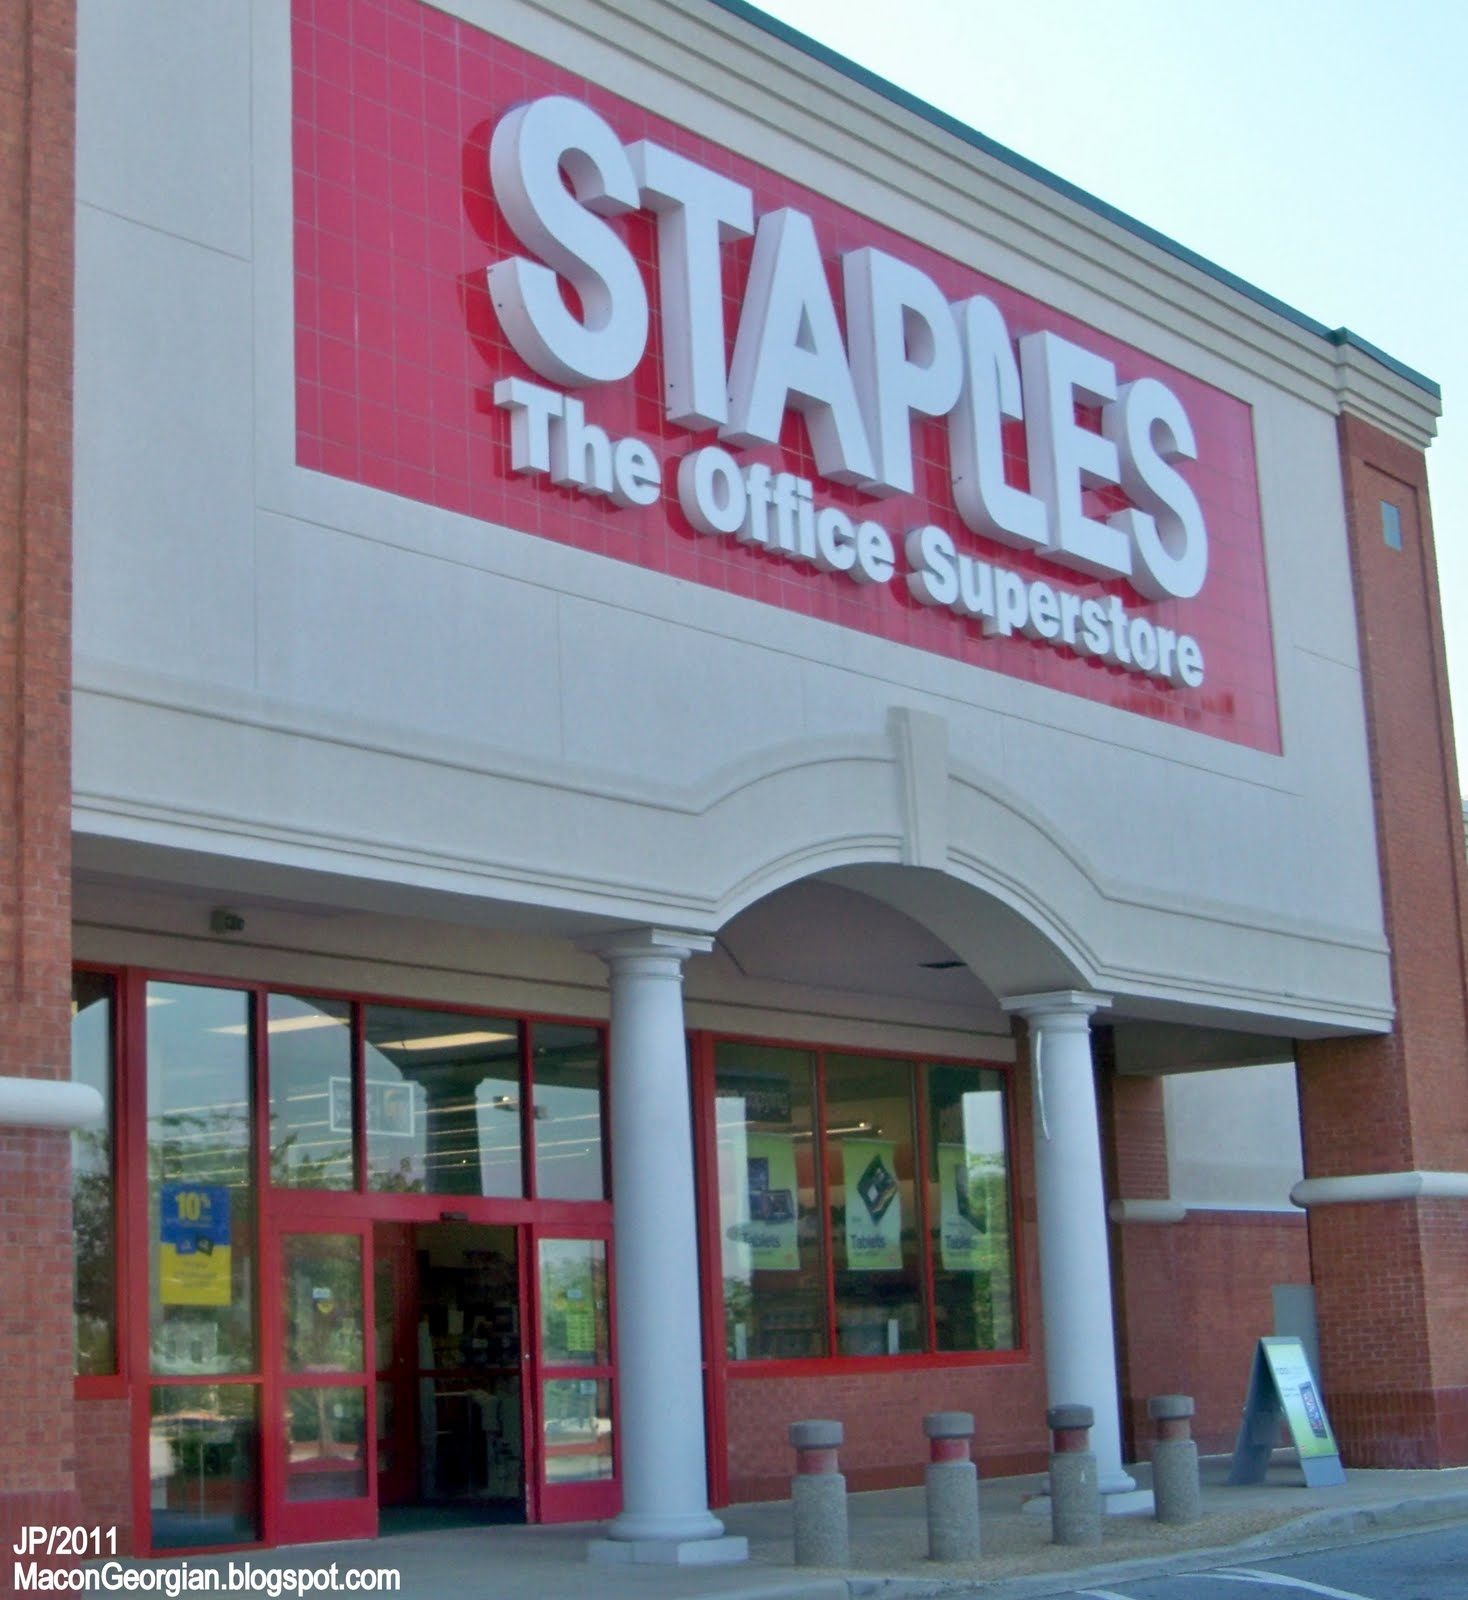 Staples office supplies / August 2018 Coupons